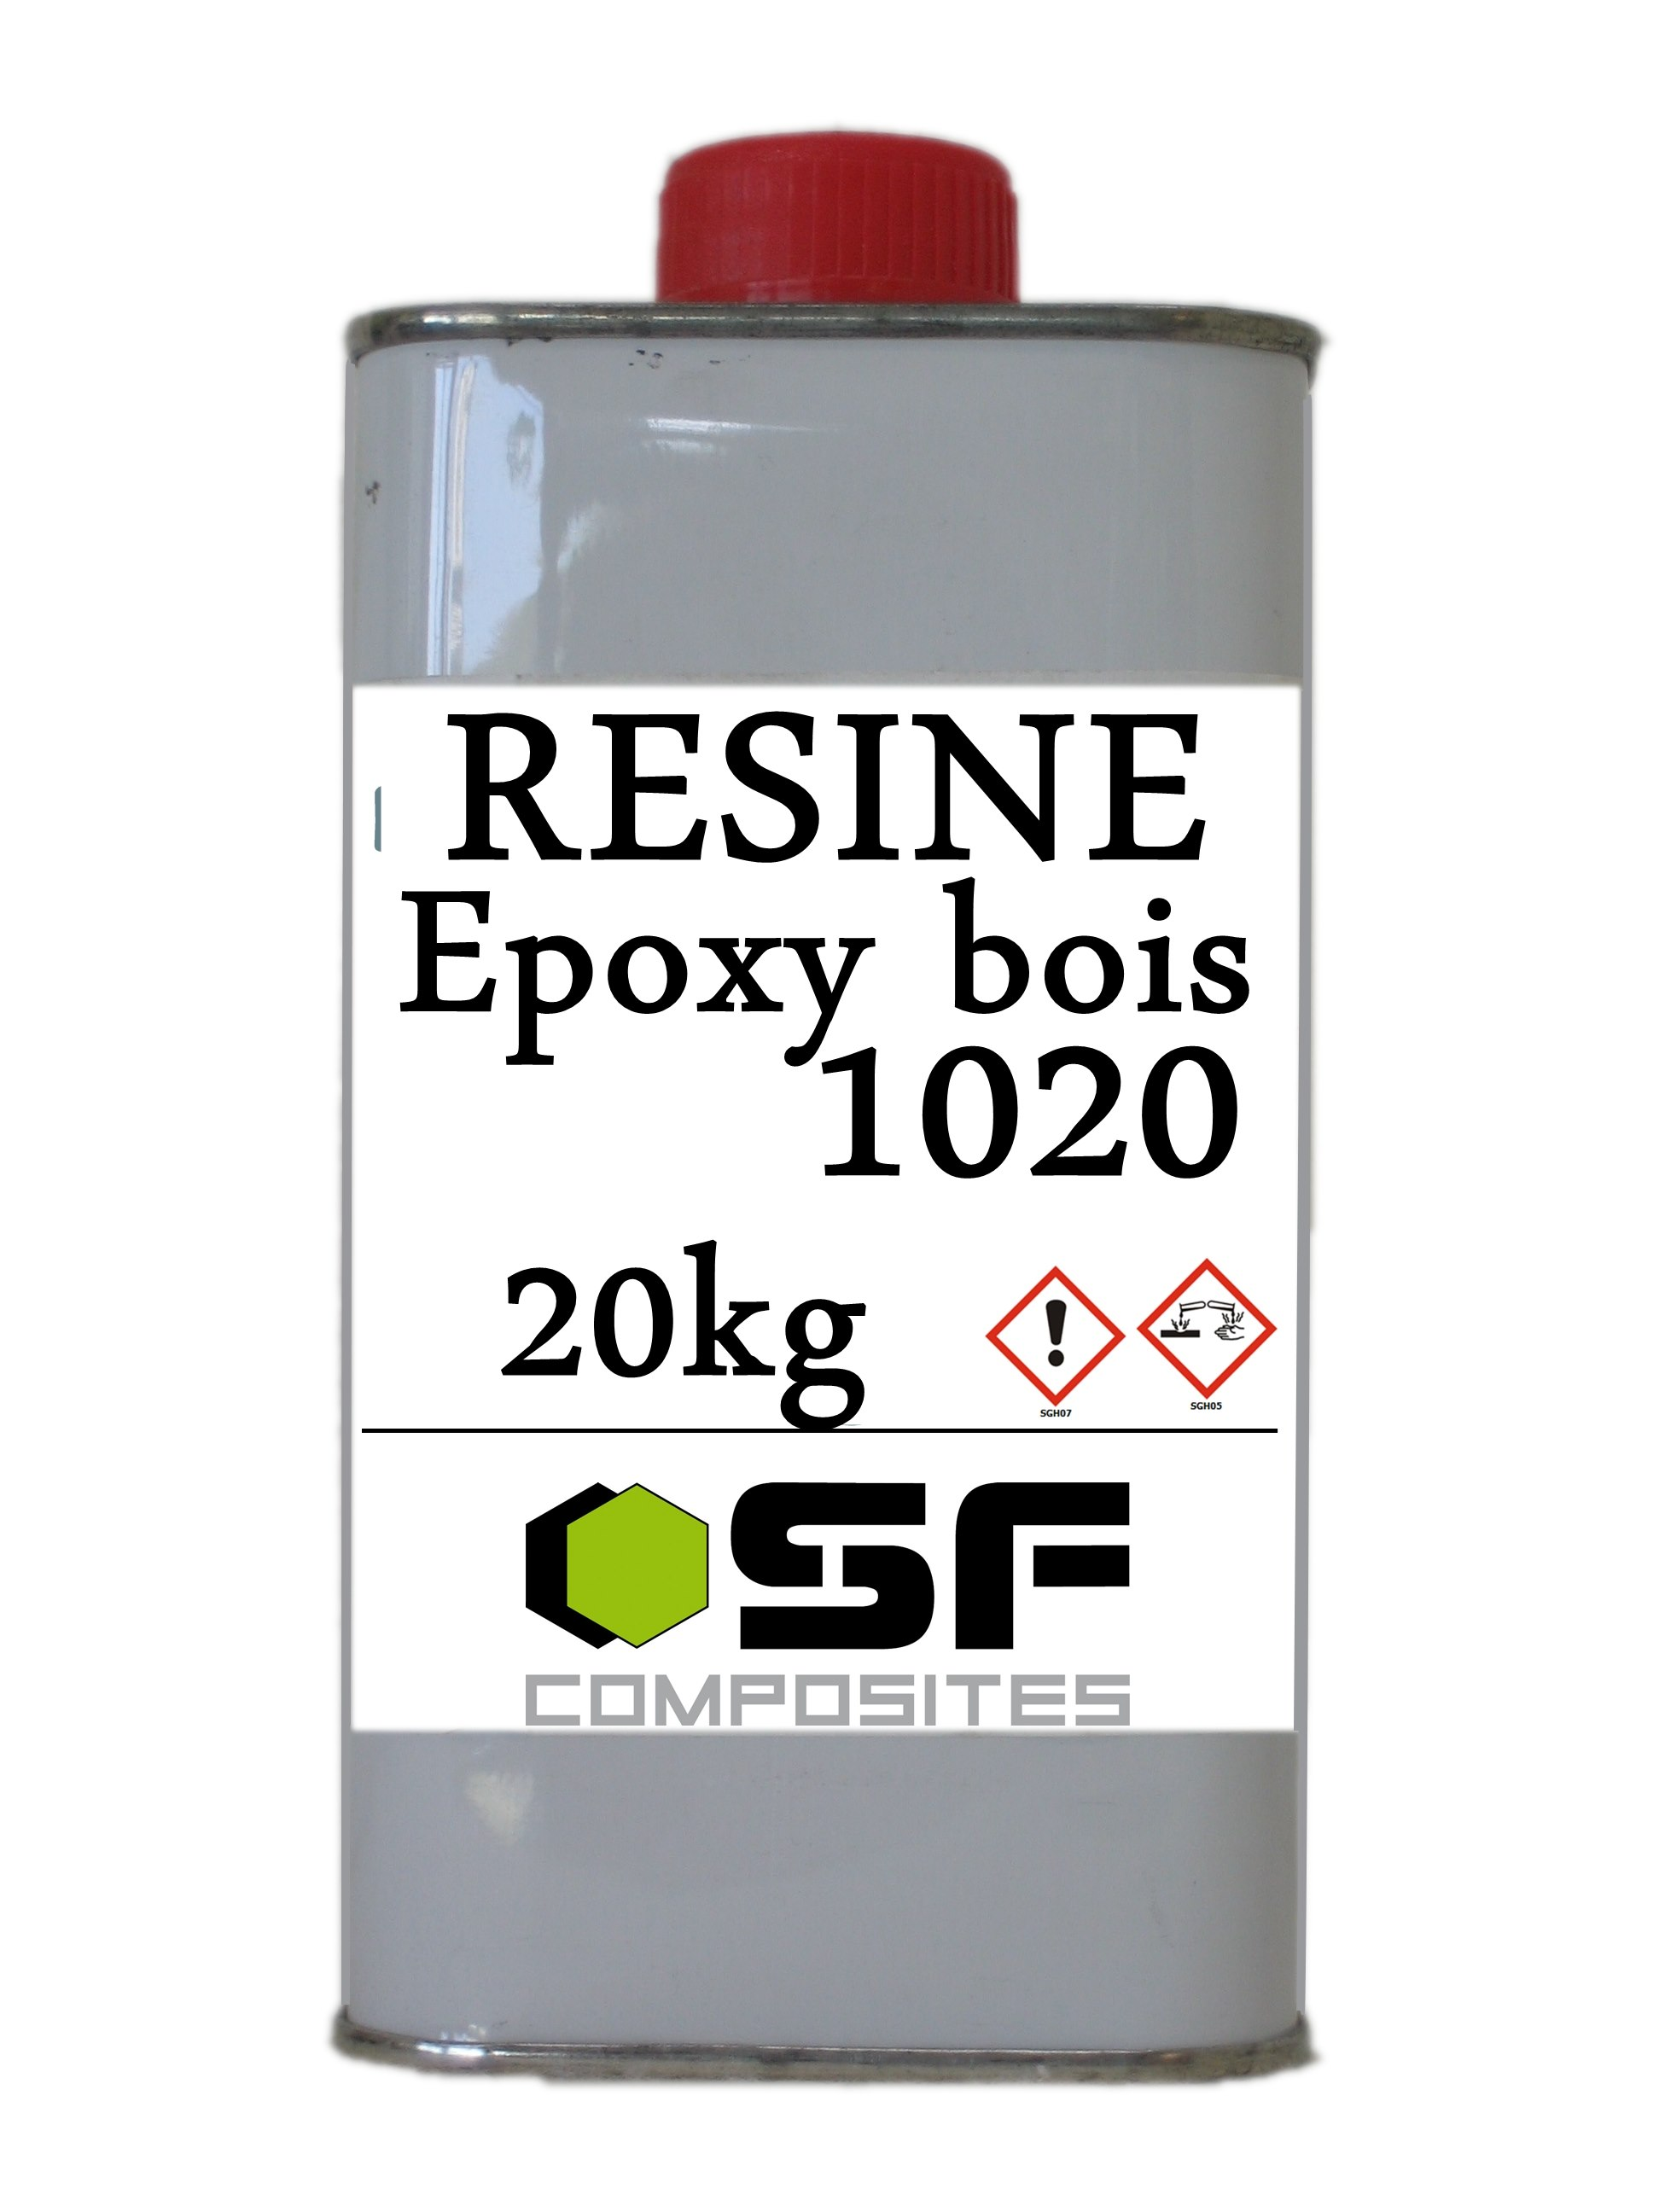 resine epoxy bois 1020 25kg sf composites resine epoxy bois 1020 25kg resine epoxy. Black Bedroom Furniture Sets. Home Design Ideas